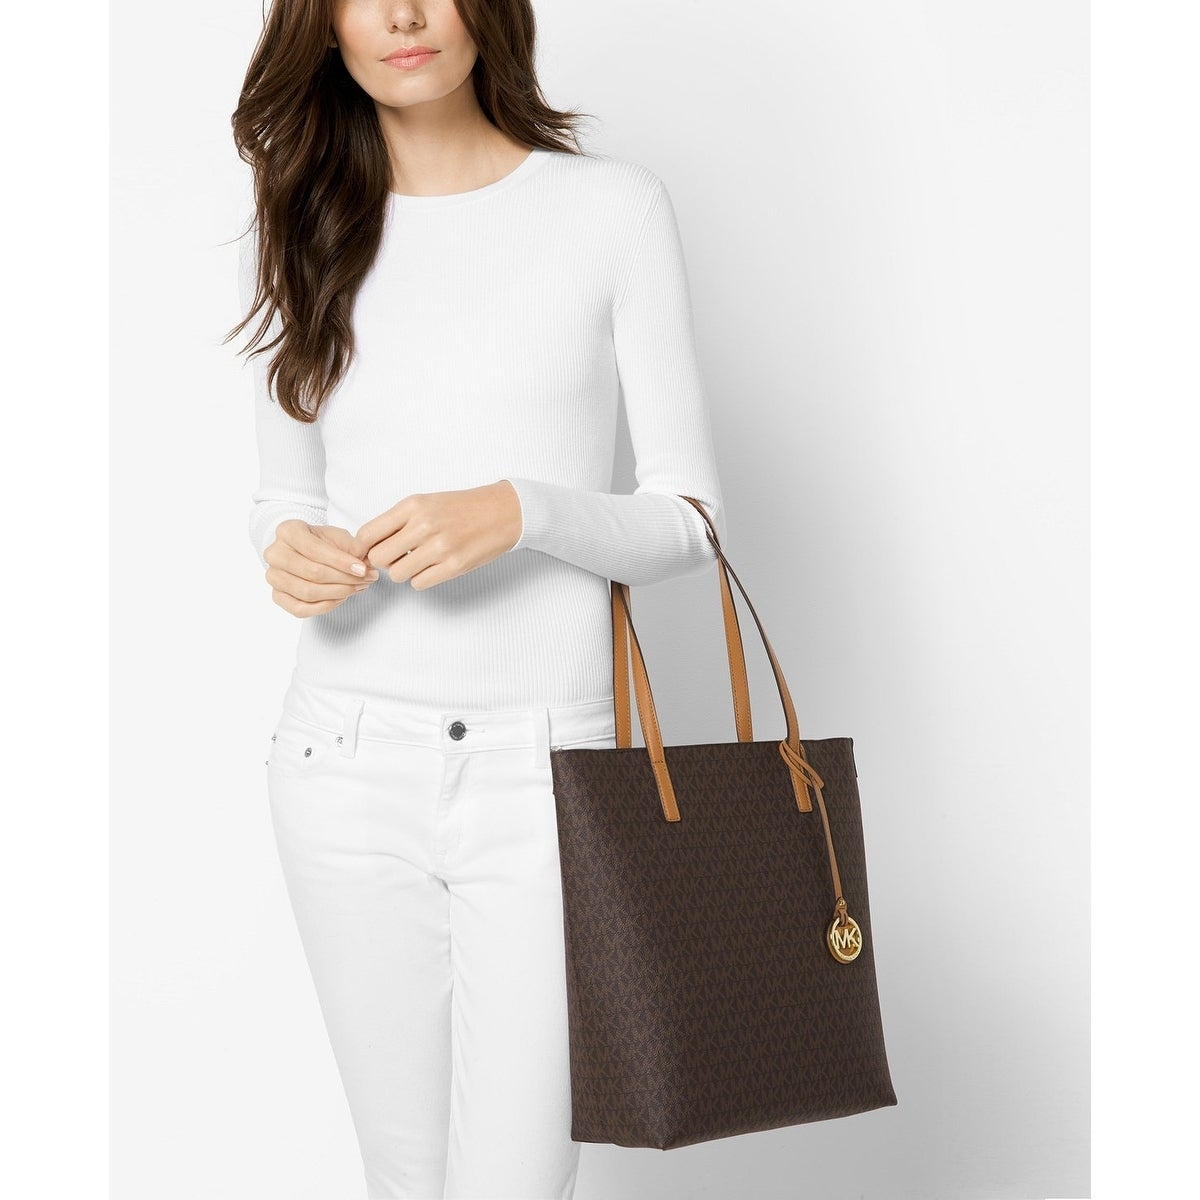 d7d95f8b02e1 Shop MICHAEL Michael Kors Signature Hayley Large North South Top Zip Tote  Brown/Acorn - Free Shipping Today - Overstock - 18214855